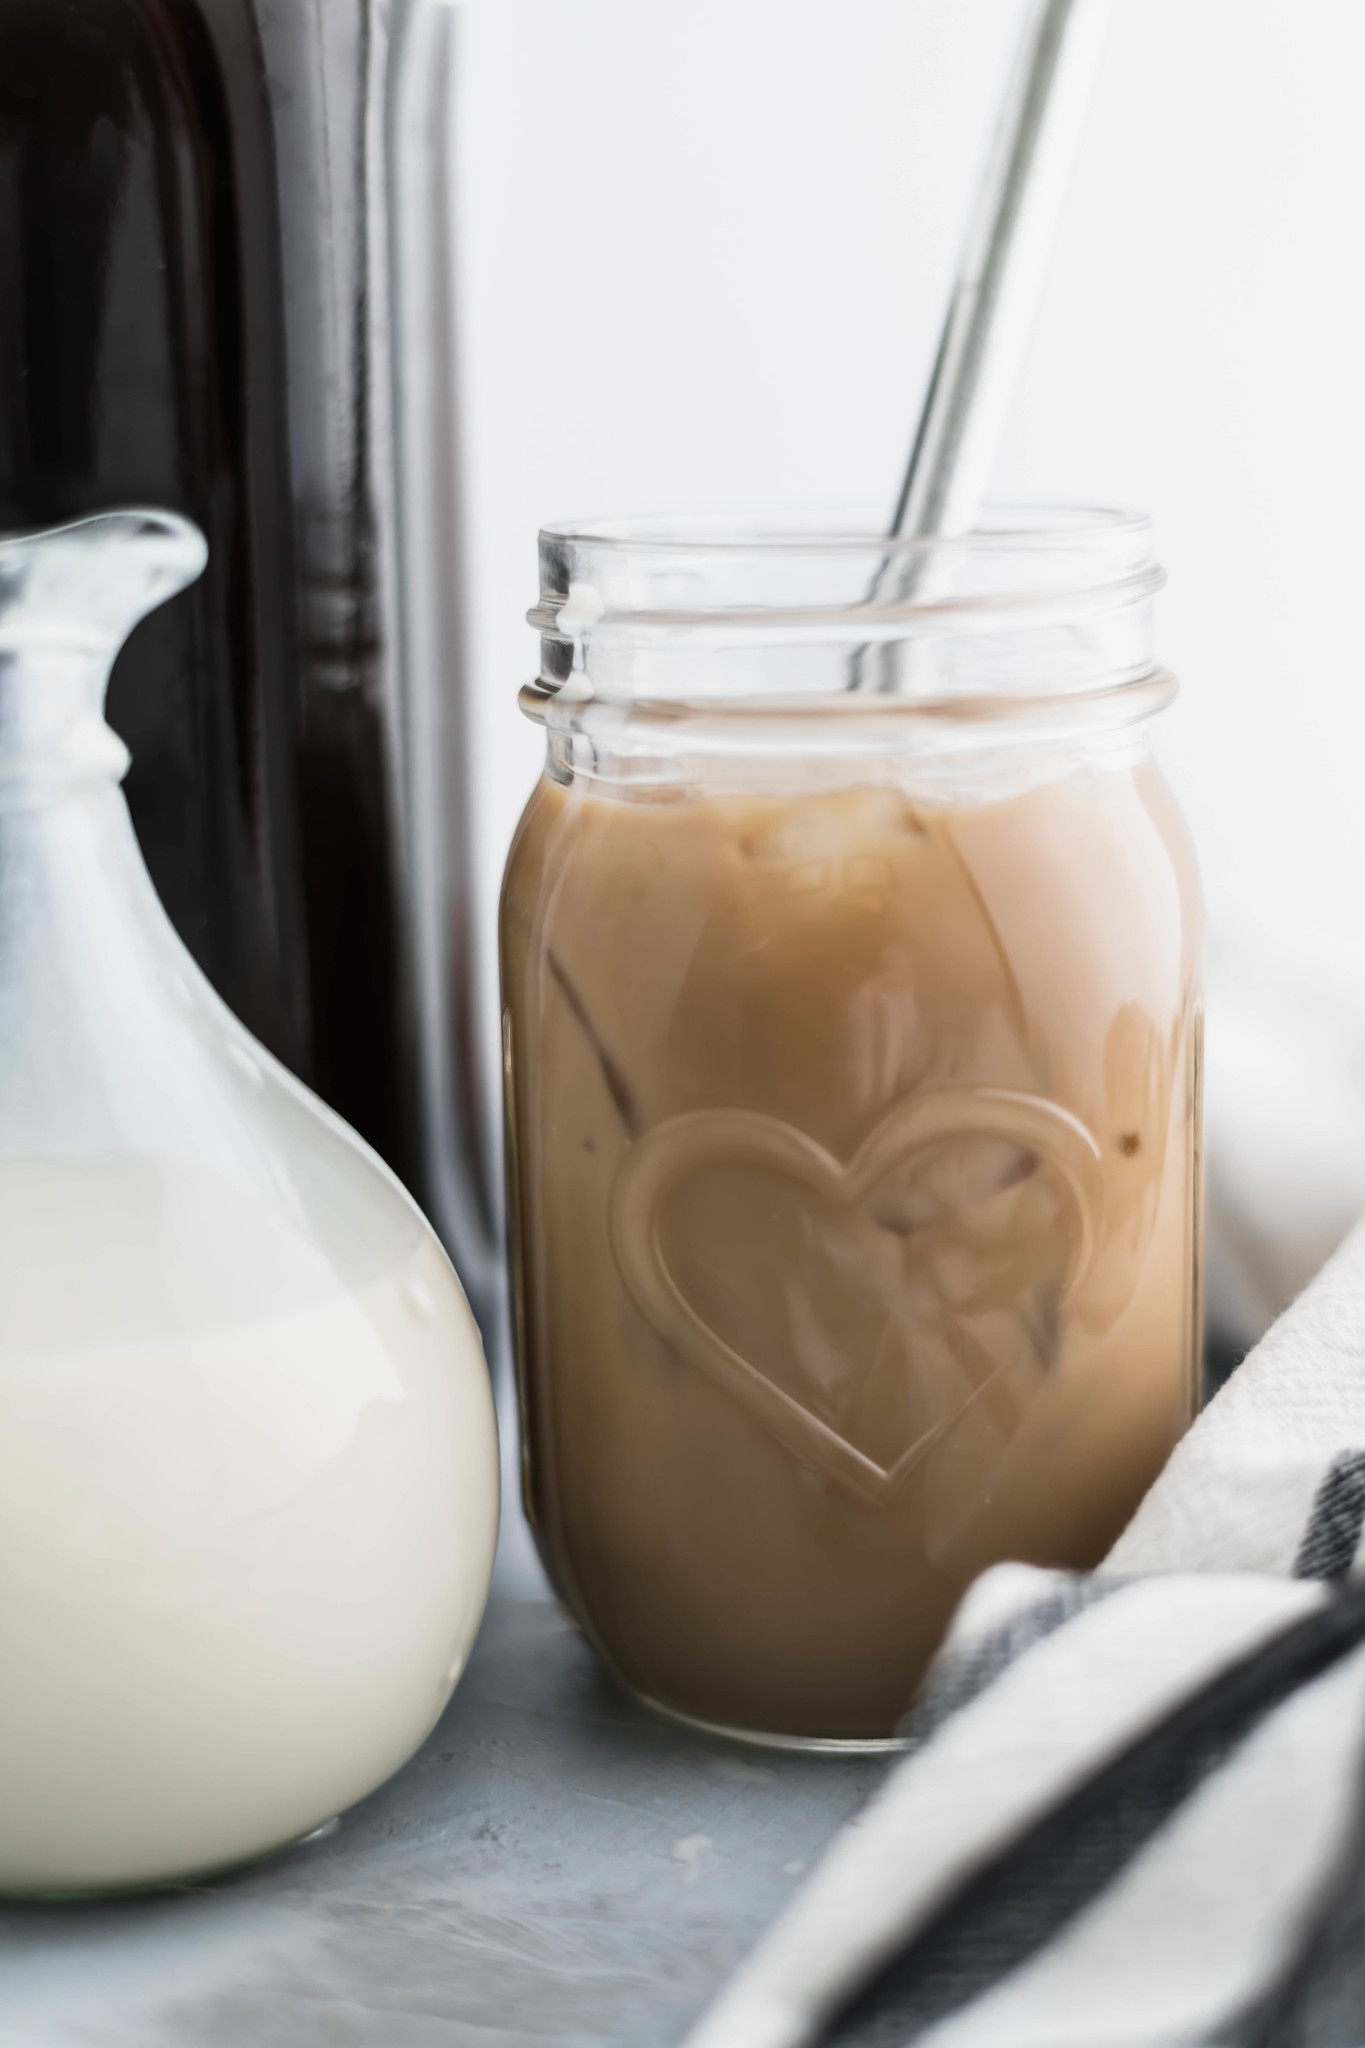 It's easier than you think to make Homemade Coffee Creamer. Just 3 ingredients needed with add-in options for all the fun flavors.